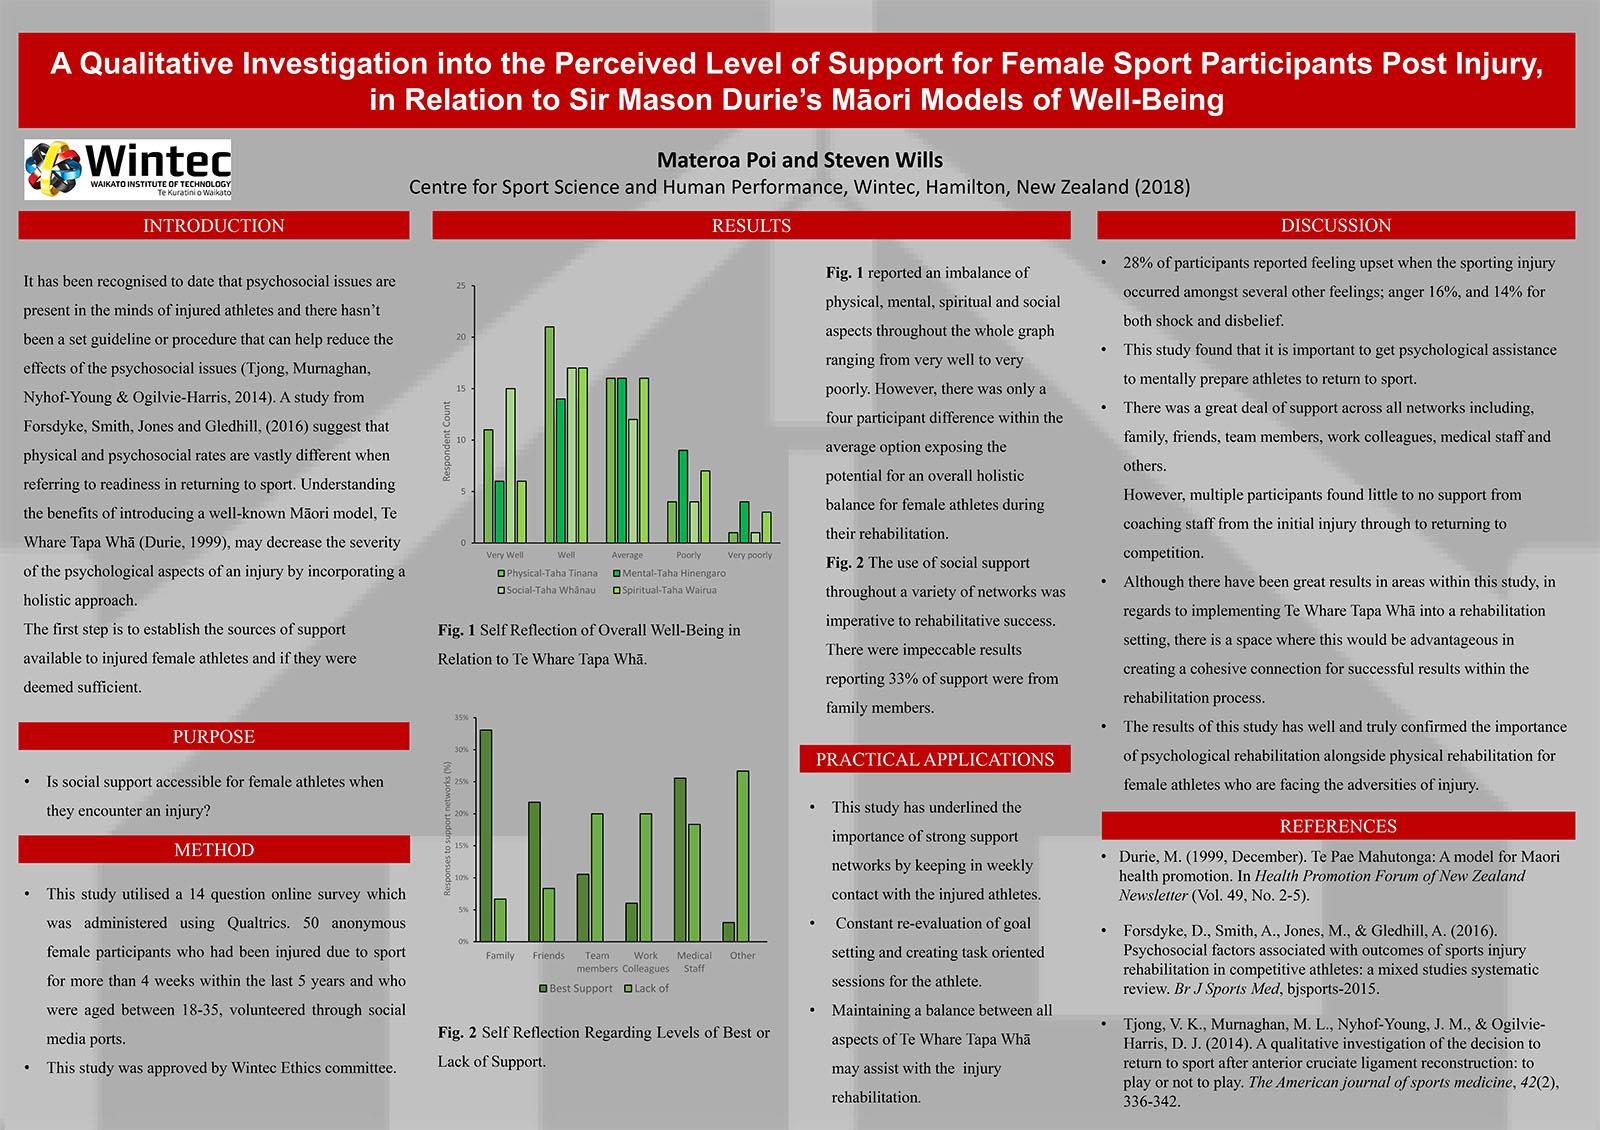 A Qualitative Investigation into the Perceived Level of Support for Female Sport Participants Post Injury, in relation to Sir Mason Durie's Maori Models of well-being